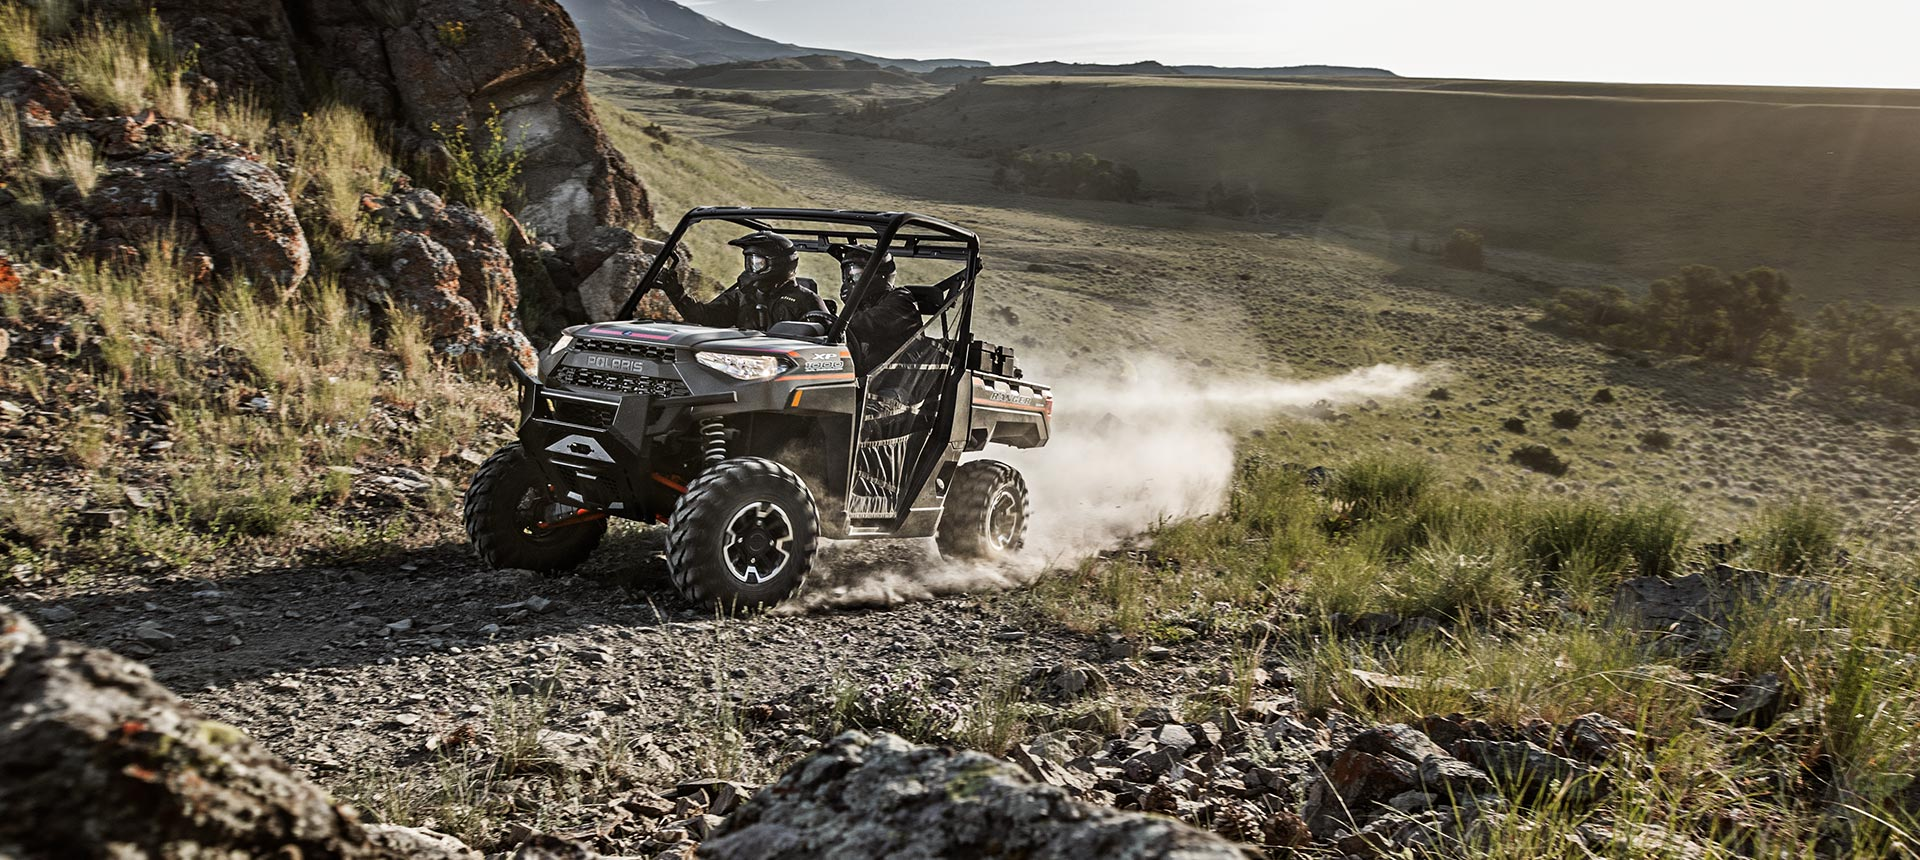 2019 Polaris Ranger XP 1000 EPS in Redding, California - Photo 2